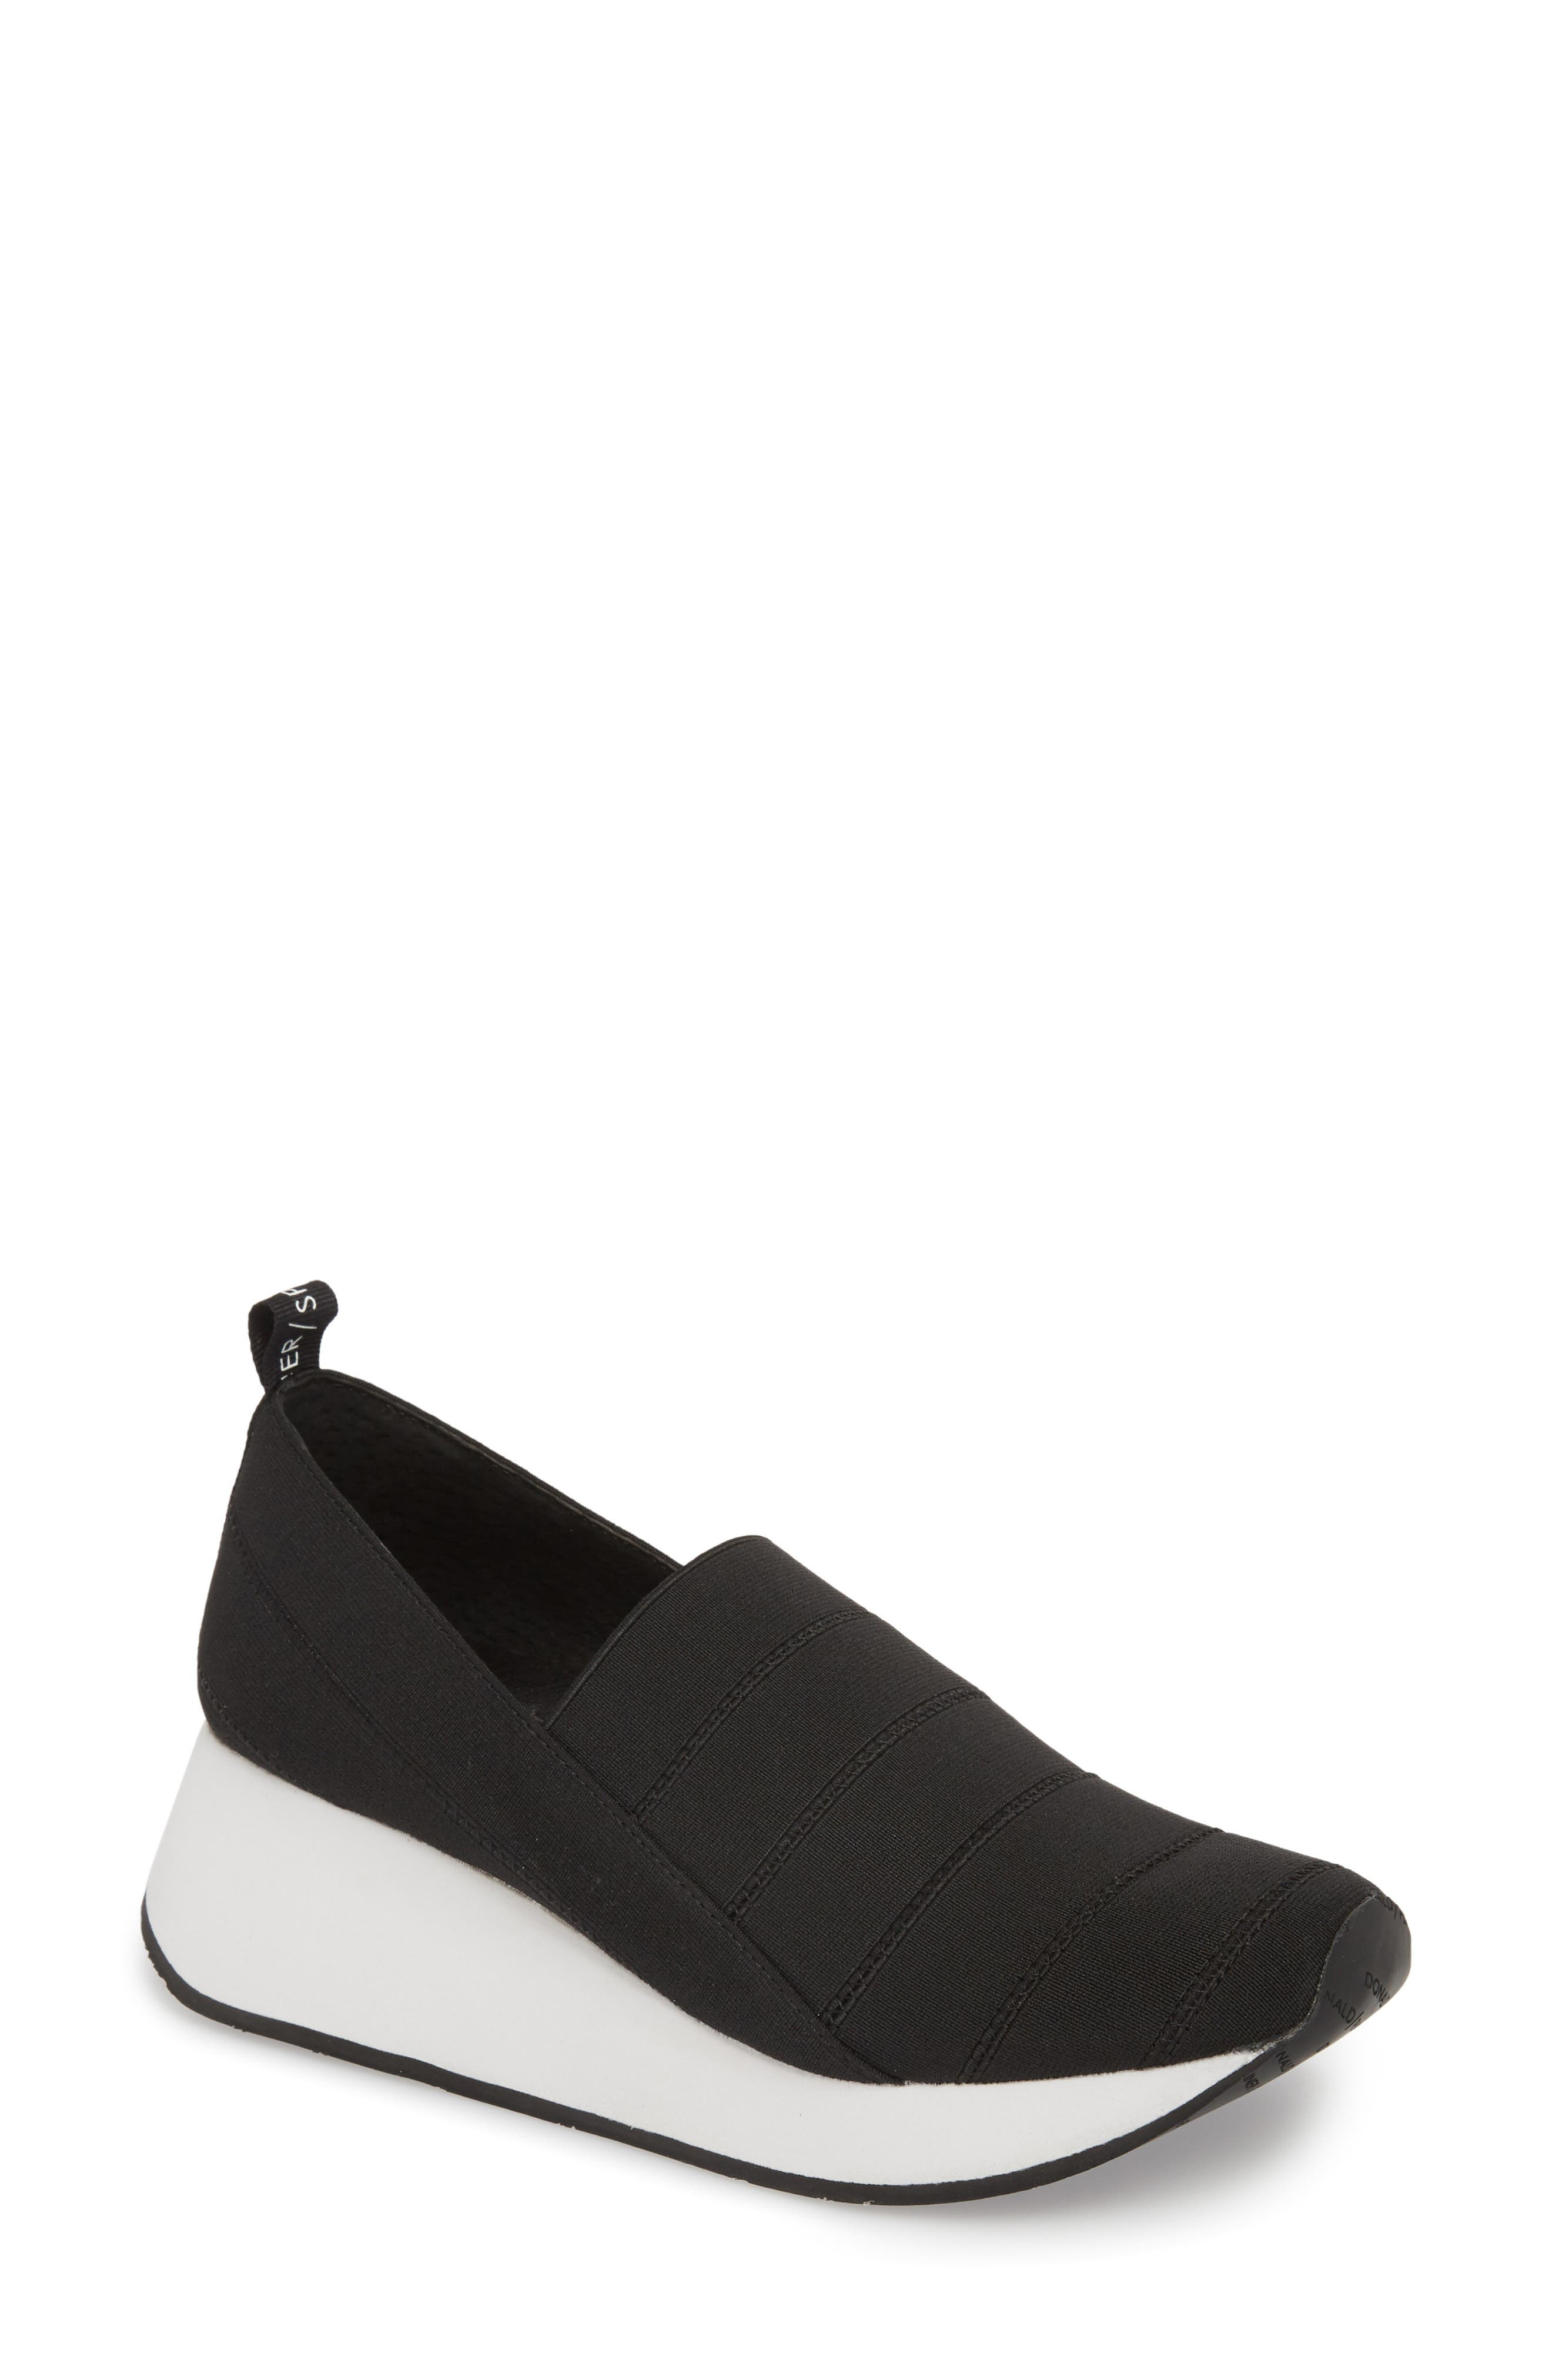 Piper Platform Slip-On Sneaker,                             Main thumbnail 1, color,                             BLACK STRETCH FABRIC